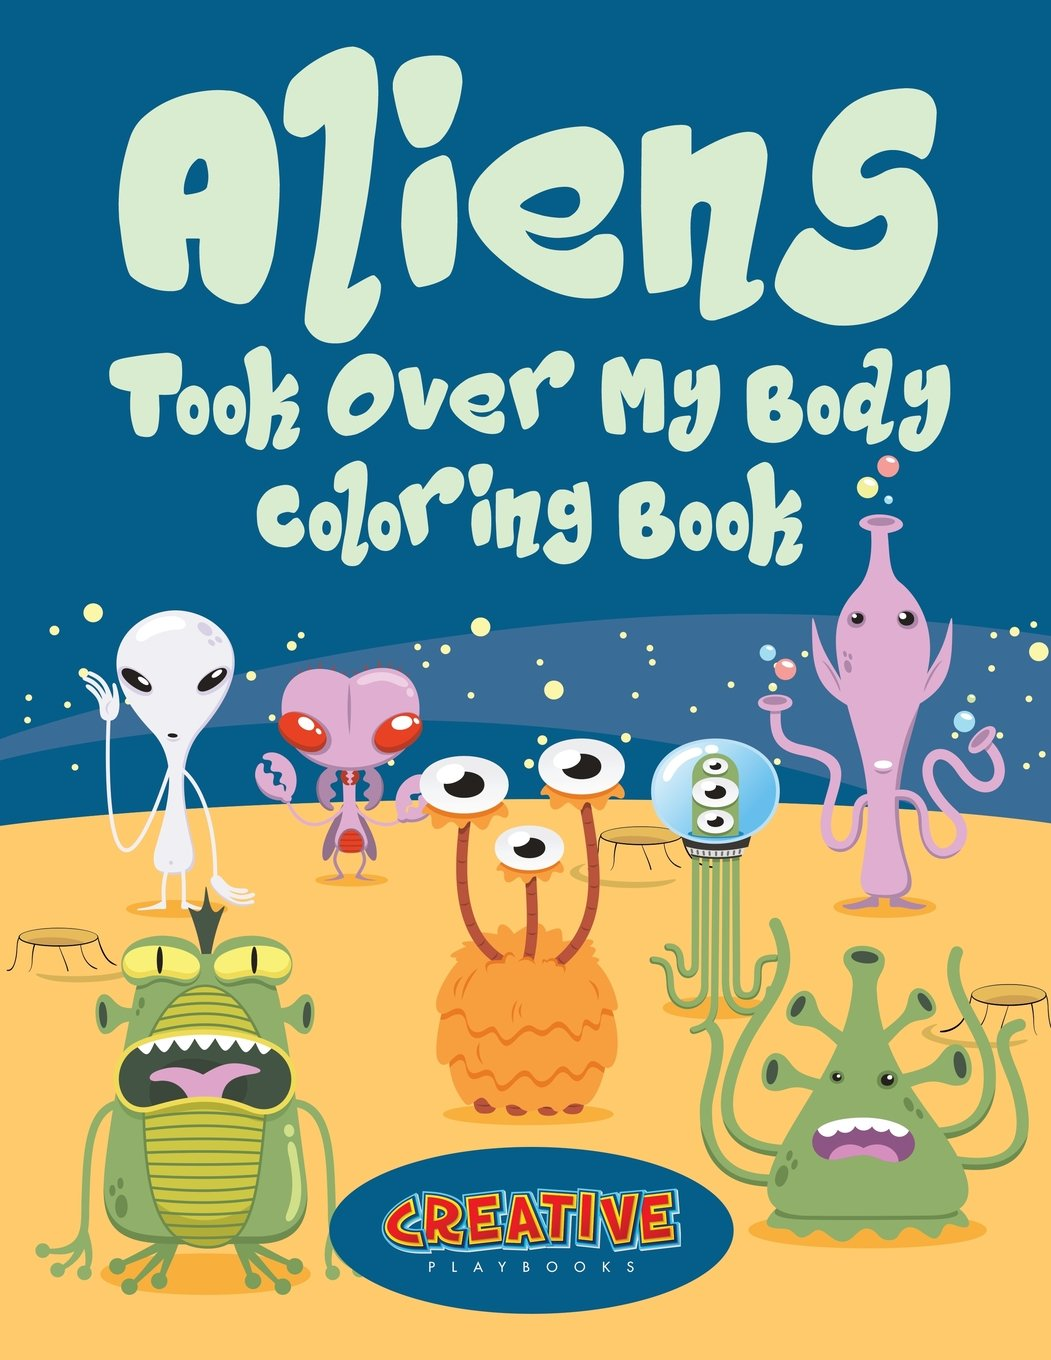 Aliens took over my body coloring book paperback june 8 2016